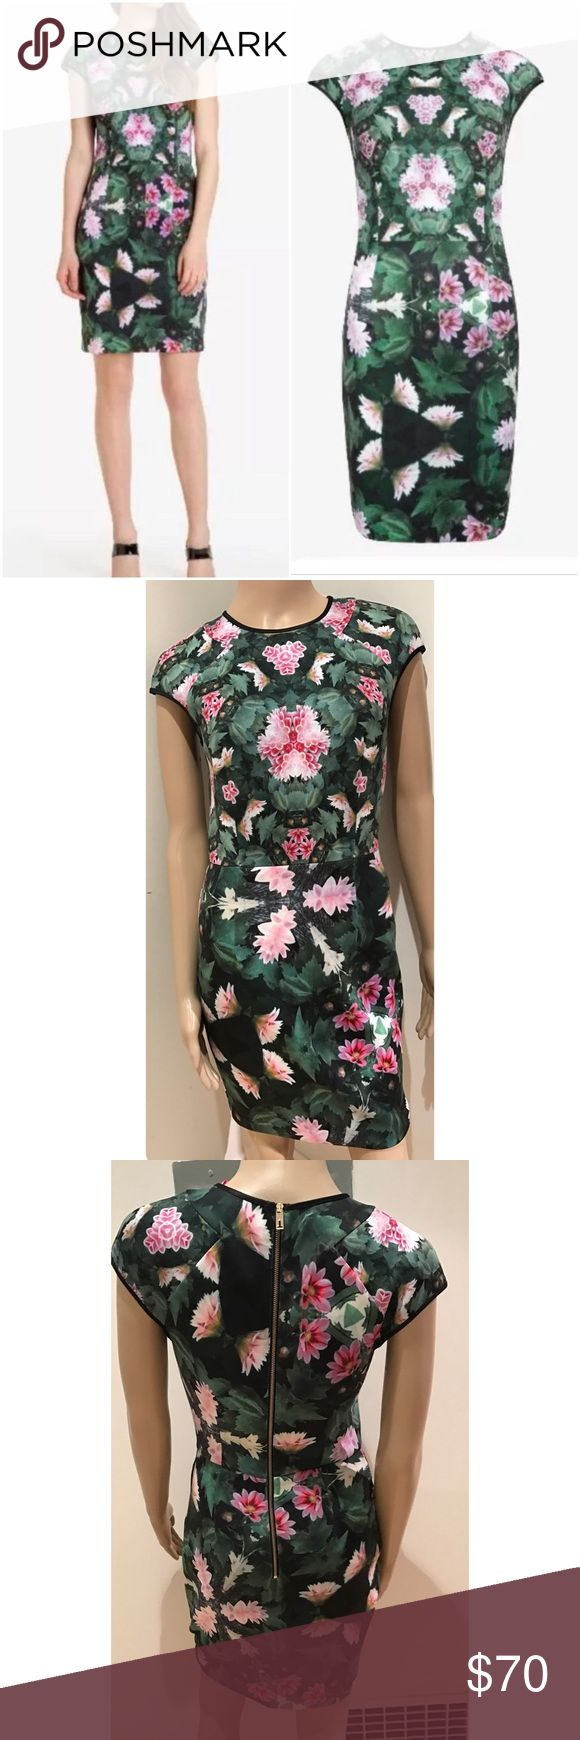 """EUC Ted Baker Friyo Geometric Floral Bodycon Dress Gorgeous Bodycon dress from Ted Bake London in UK 1, US Size 4. No flaws. Stretch to the dress so might go up to a small to medium size person (4-6). Measure about 34"""" length, 13"""" waist, 16"""" pit to pit. 88% polyester / 12% elastane ❌No trades or modeling. Open to reasonable offers. Thank you‼ Ted Baker London Dresses Midi"""